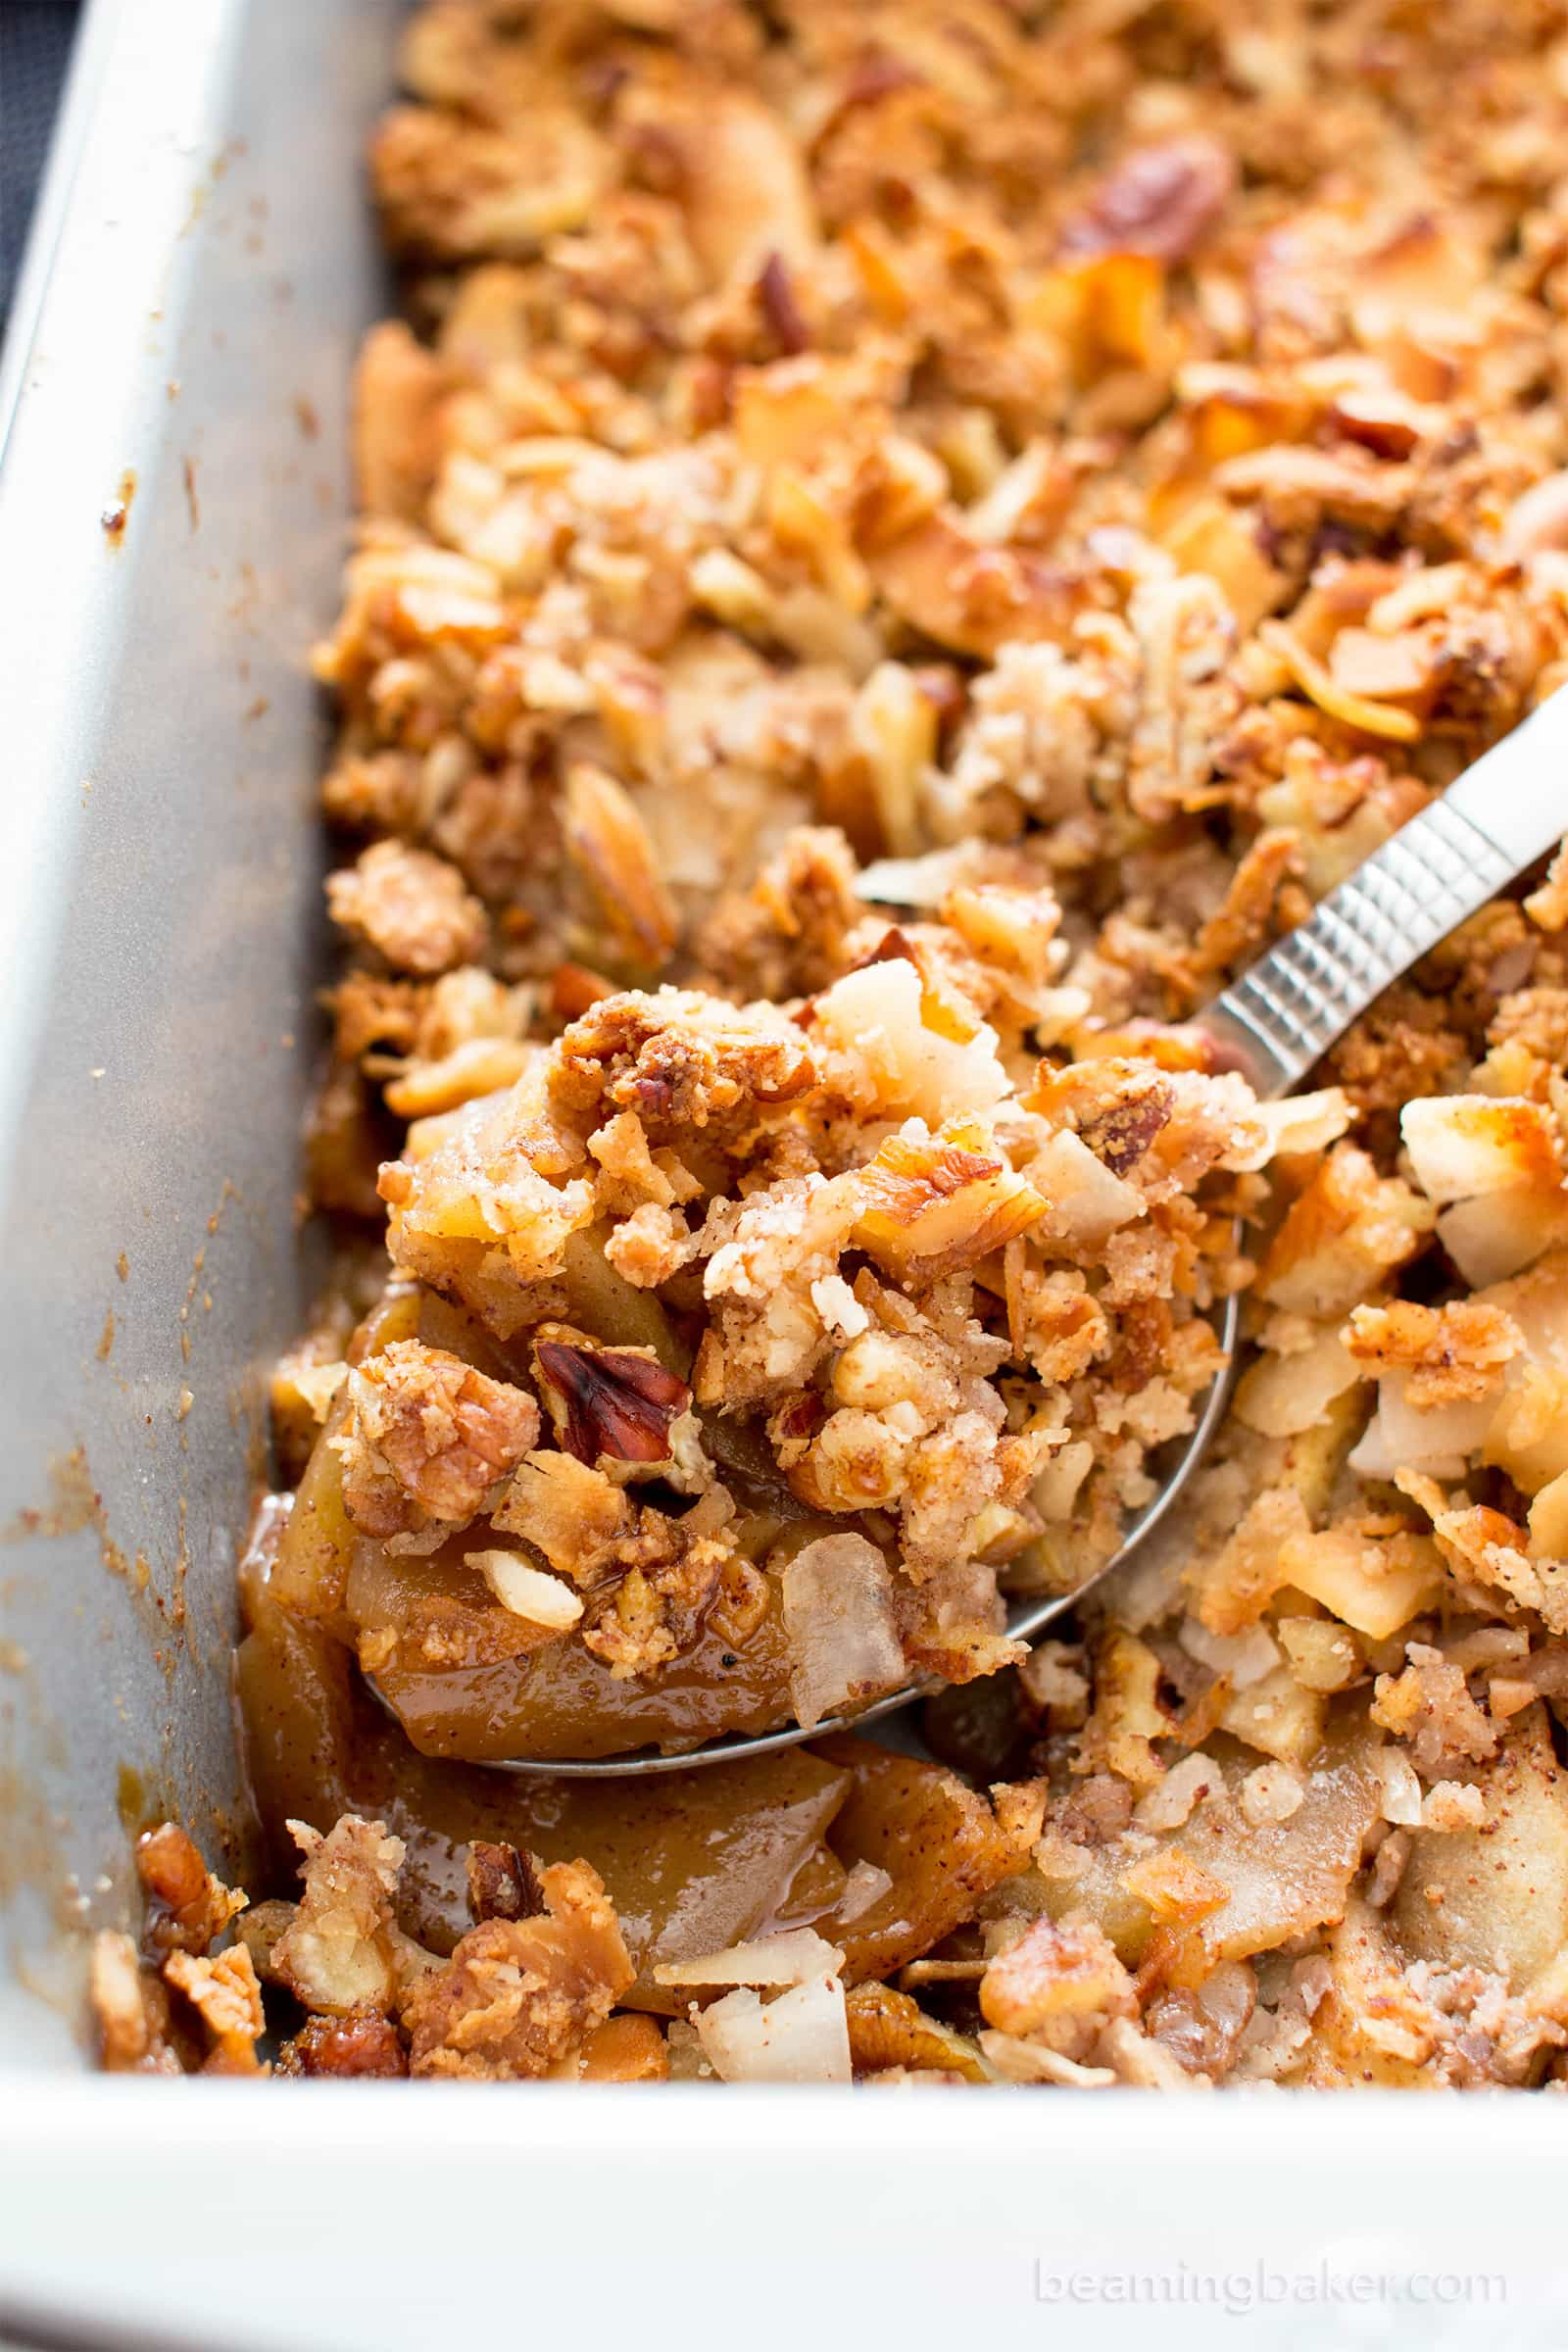 Paleo Apple Pecan Coconut Crisp Recipe (V, GF): a super crisp, nutty topping blanketing a warm, apple cinnamon filling with gooey caramelized coating. #Vegan #Paleo #GlutenFree #DairyFree #Healthy #Fall | BeamingBaker.com